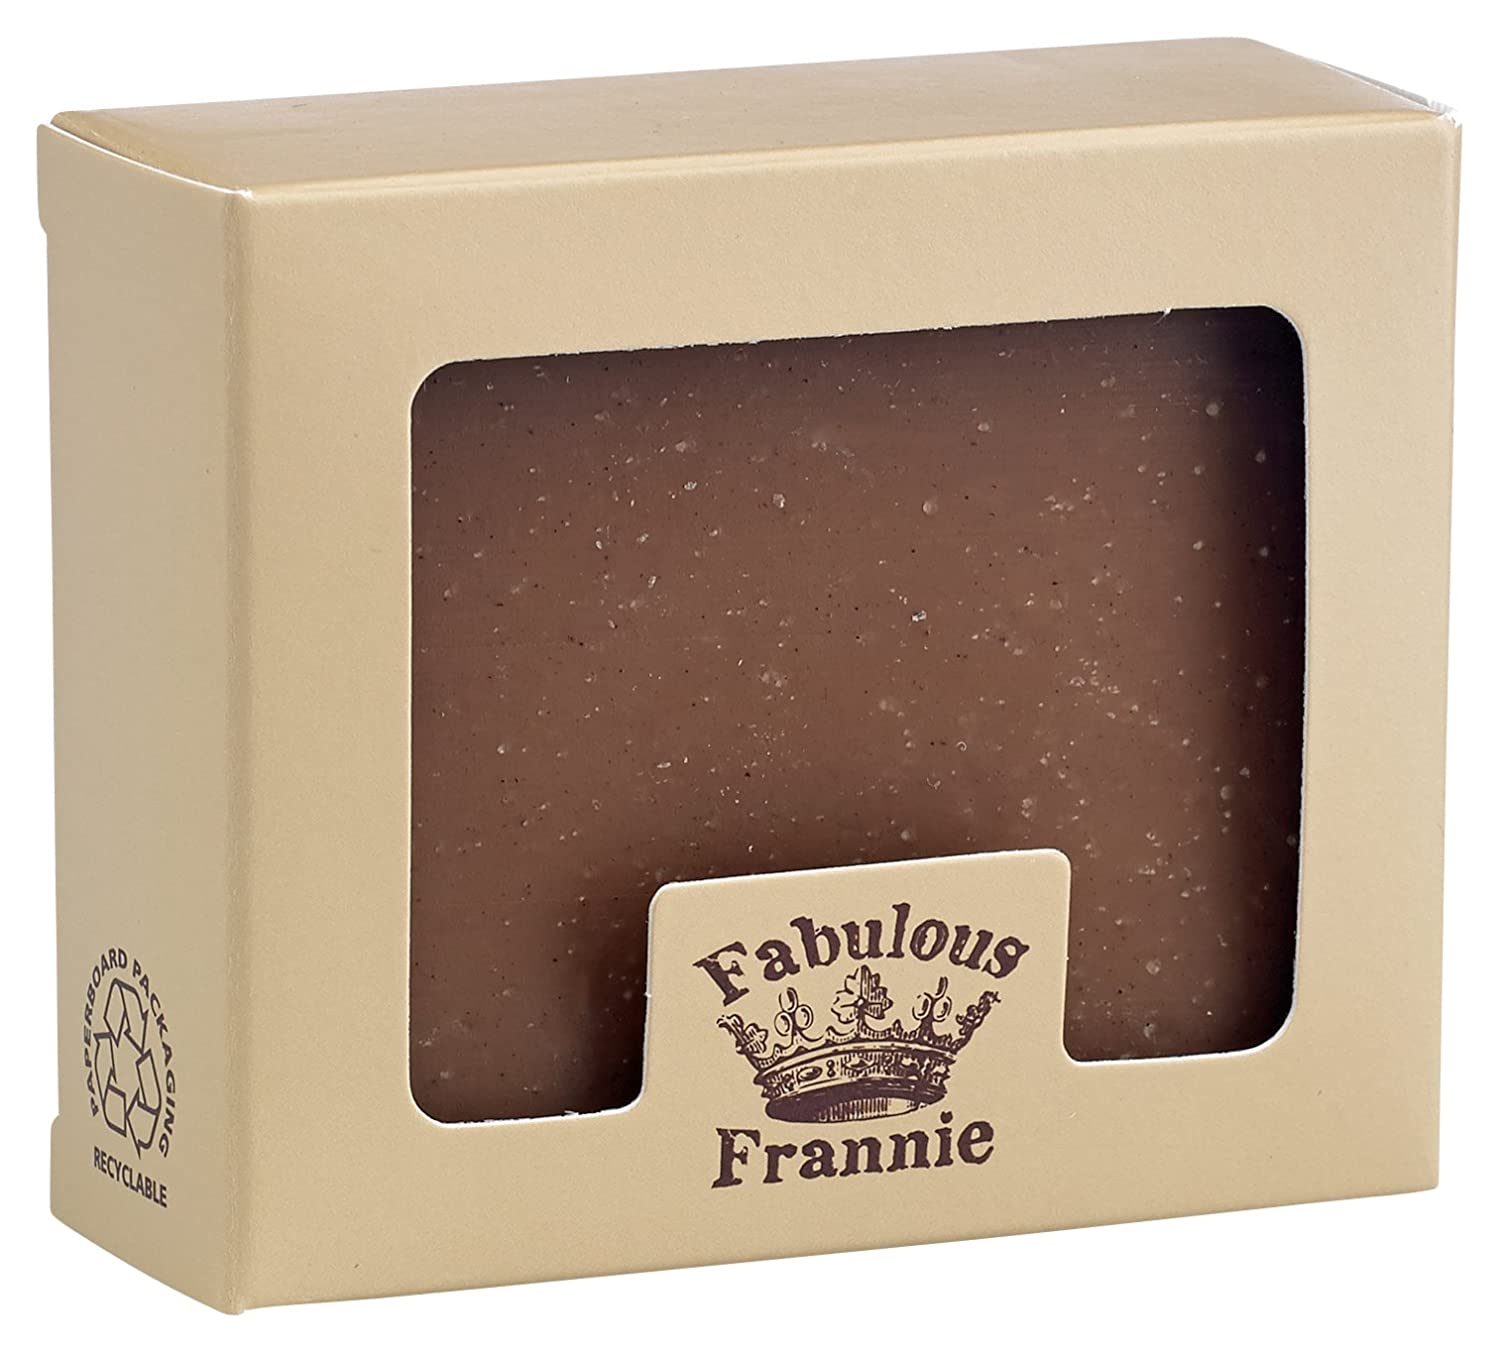 100% Natural Herbal Soap 4 oz made with Pure Essential Oils (LEMONGRASS) Fabulous Frannie